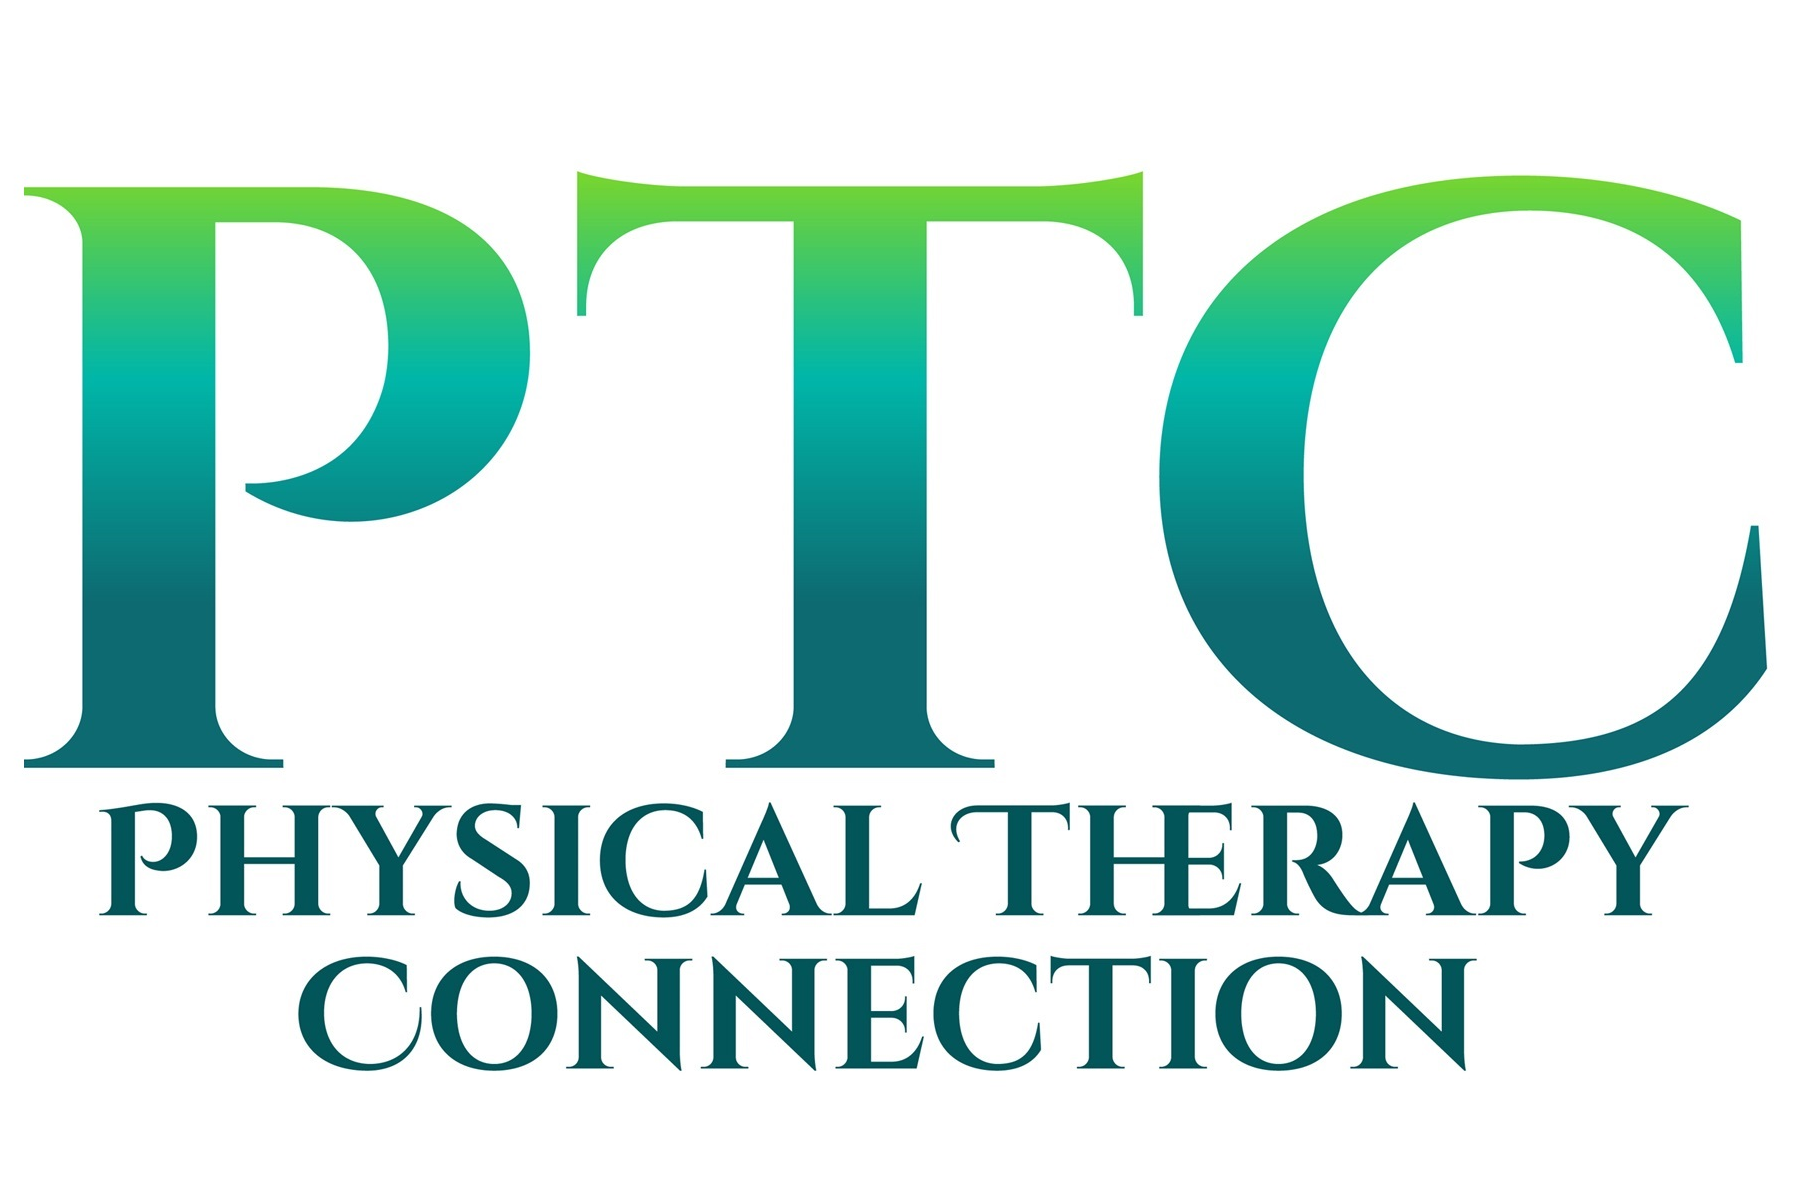 The Physical Therapy Connection